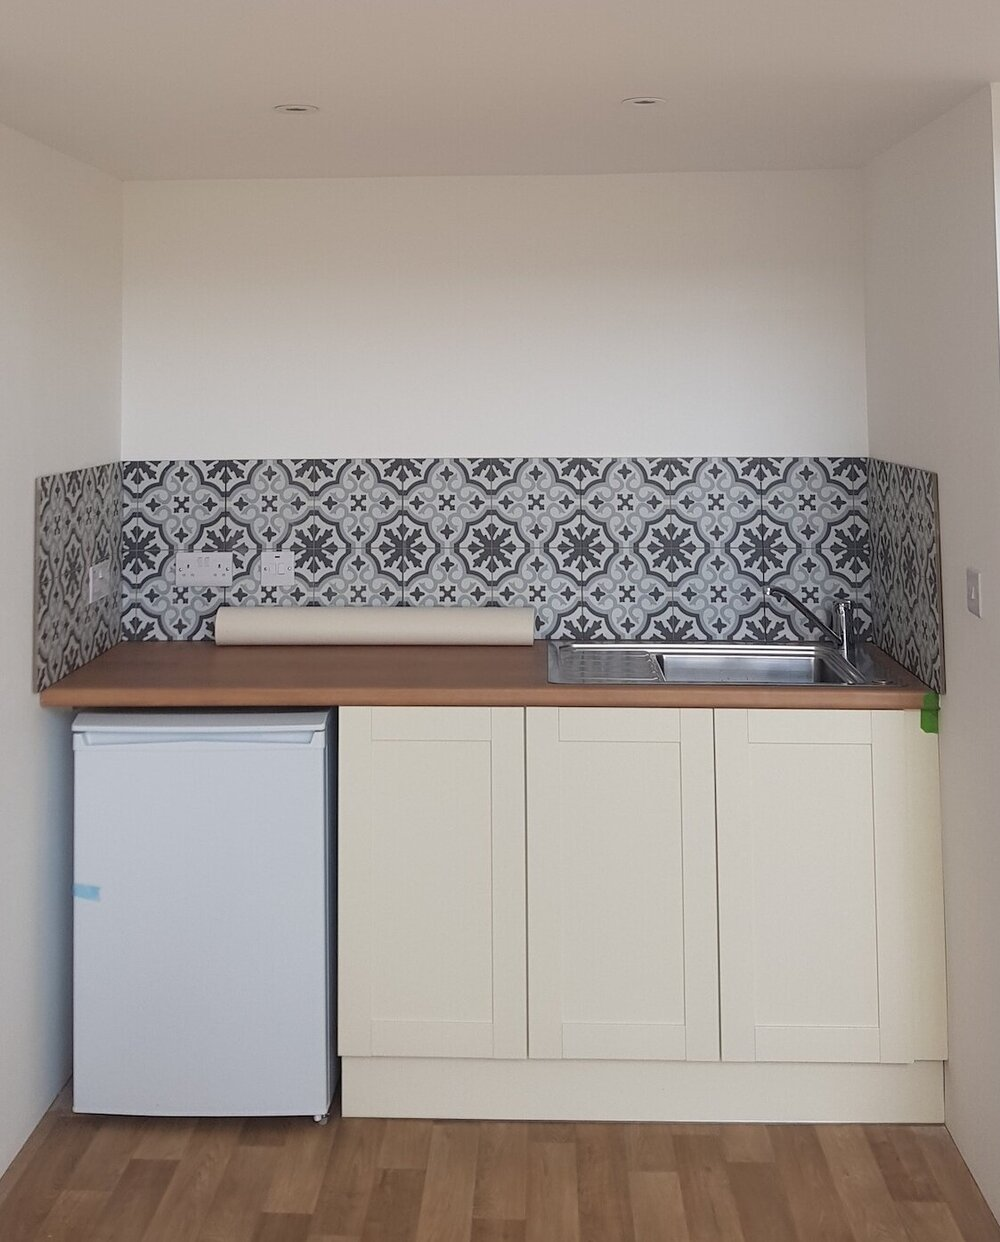 The tiny kitchenette sits in a little alcove at the back of the studio. A simple run of three cupboards, an under counter fridge with freezer compartment, and more leftover tiles from the barn renovation give it character while being functional. Perfect for essential coffee and tea while painting, and adaptable {with microwave and shelf above, added later - also cupboard knobs!} for longer term use. There's a little hot water tank in one of the cupboards too.